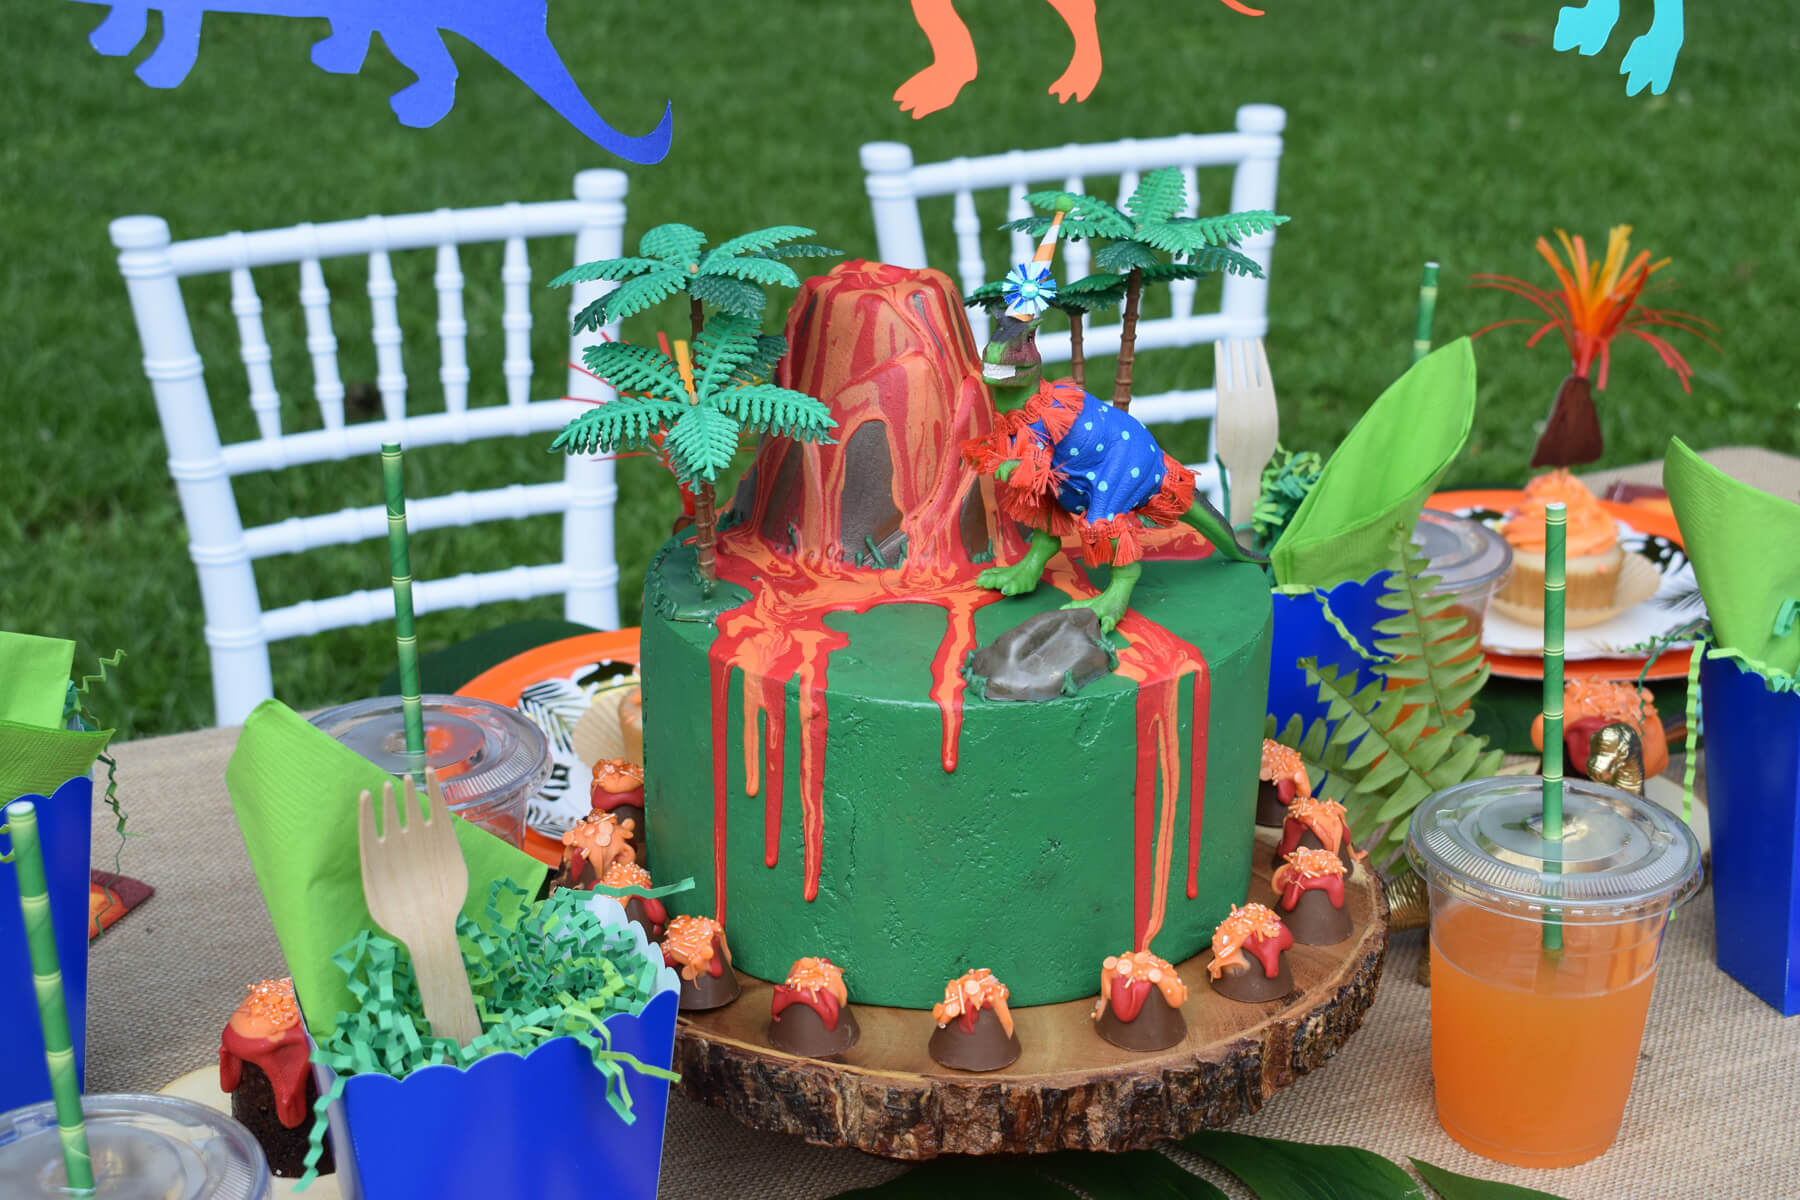 Place Setting with Volcano Cake from Dinosaur Stomp Birthday Party styled by A Party Made Perfect | Black Twine